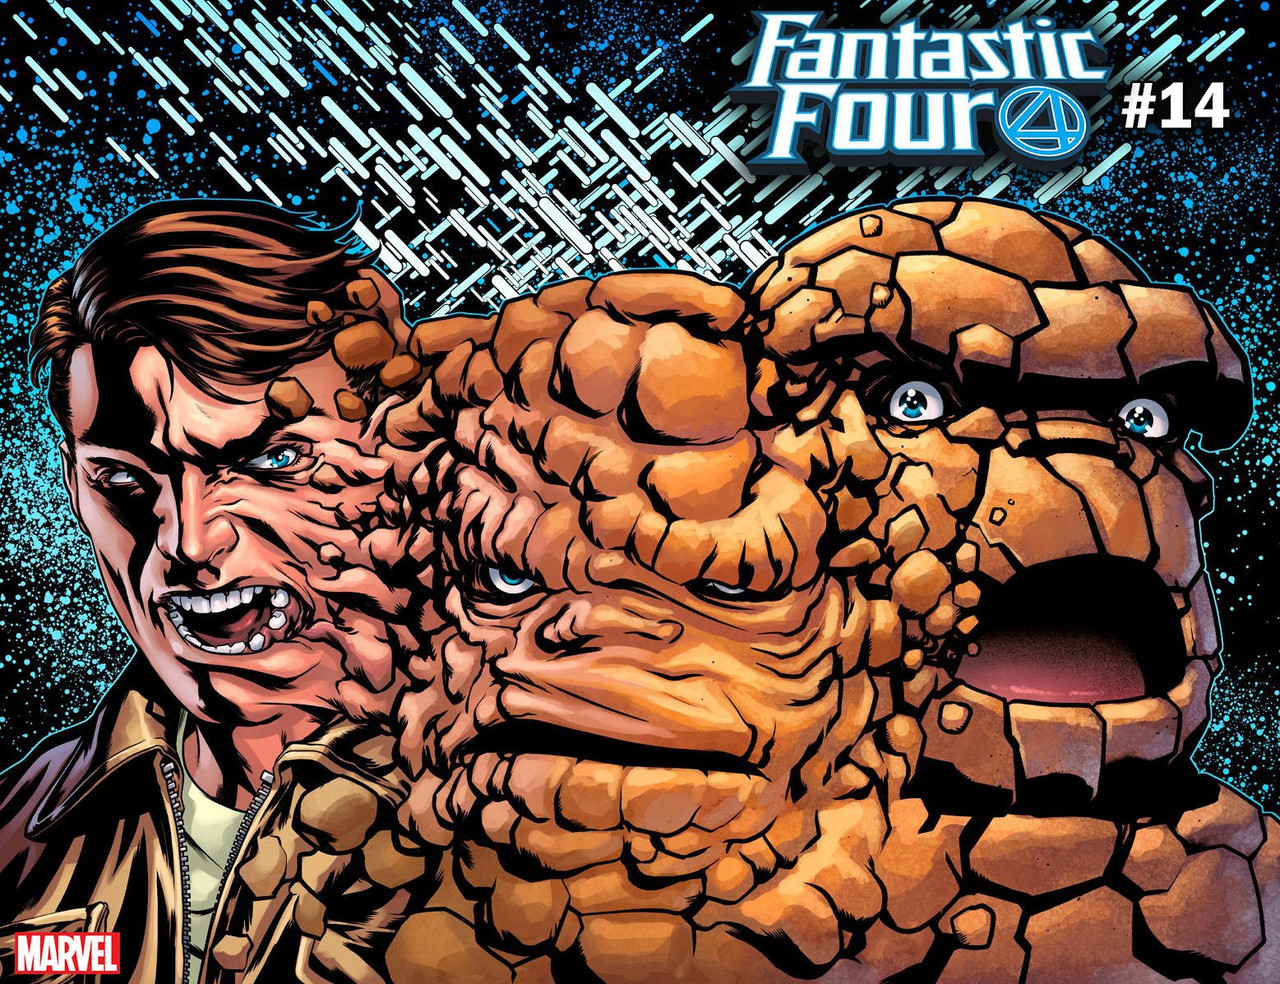 65986498c69 Marvel Fantastic Four #14 Comic Book [Thing Immortals Variant Cover]  (Pre-Order ships September)